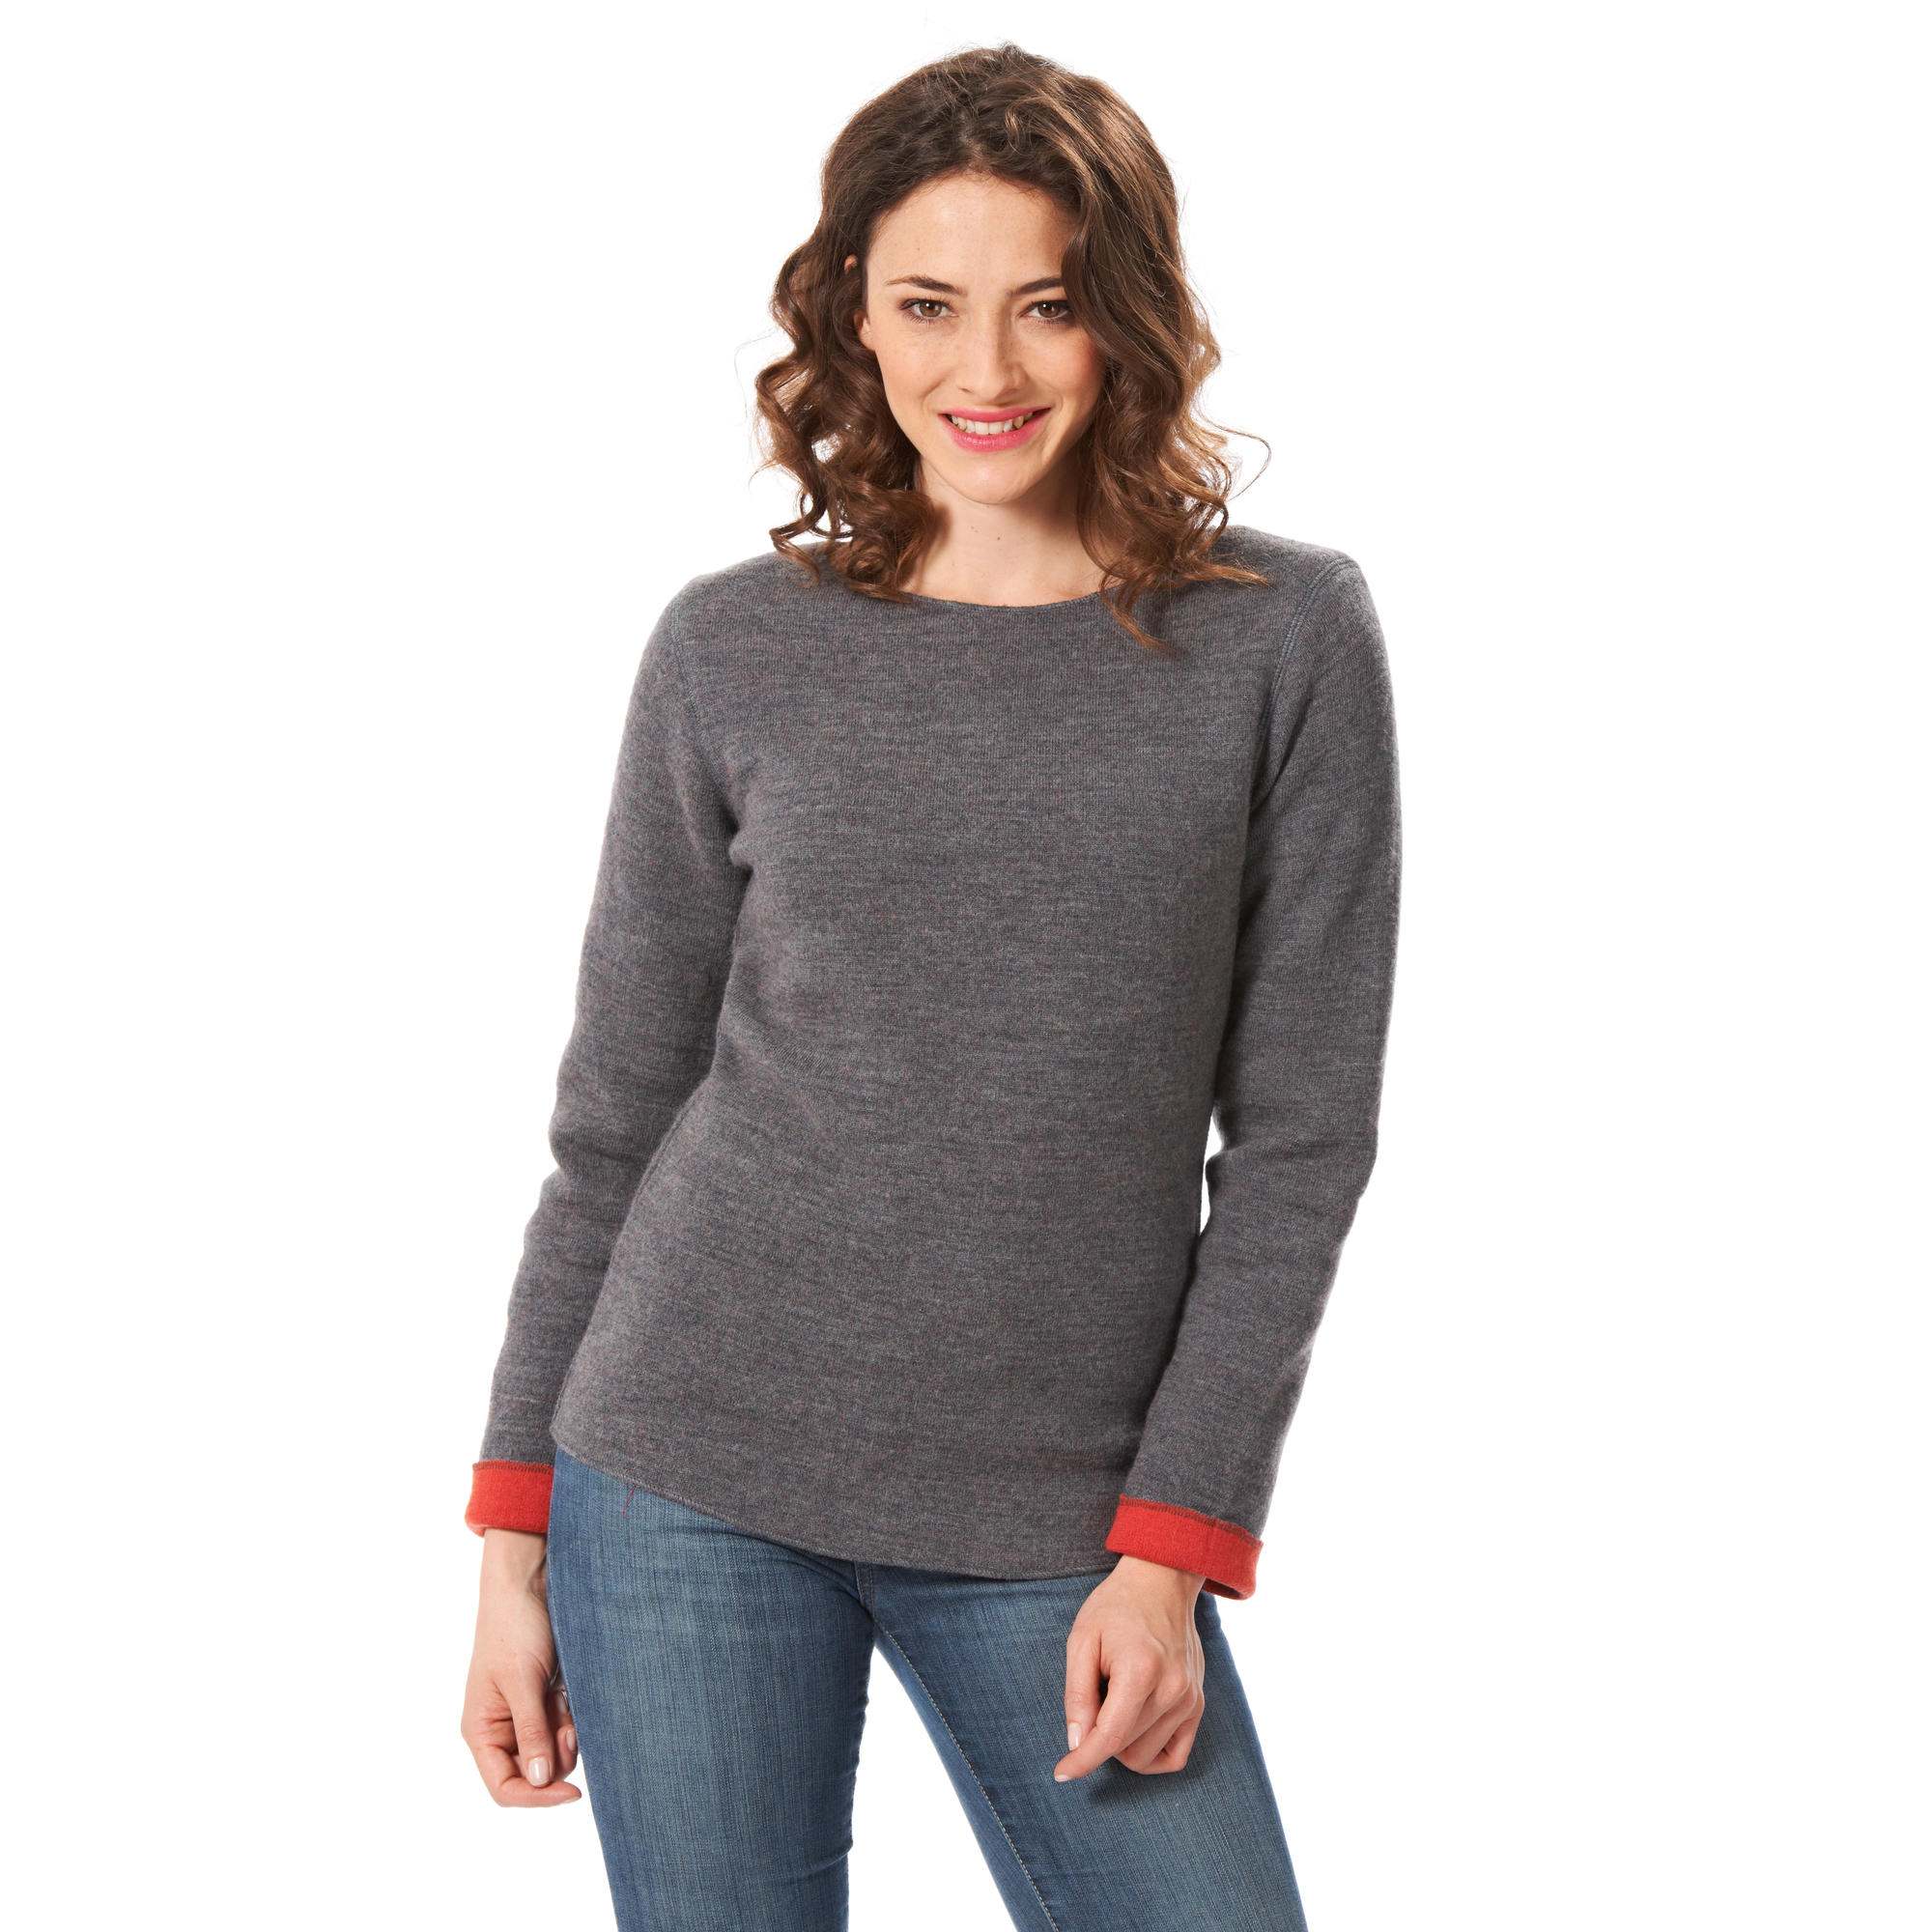 Pullover 'Outdoor' grau/orange  | L | Artikelnummer: 2646533 L